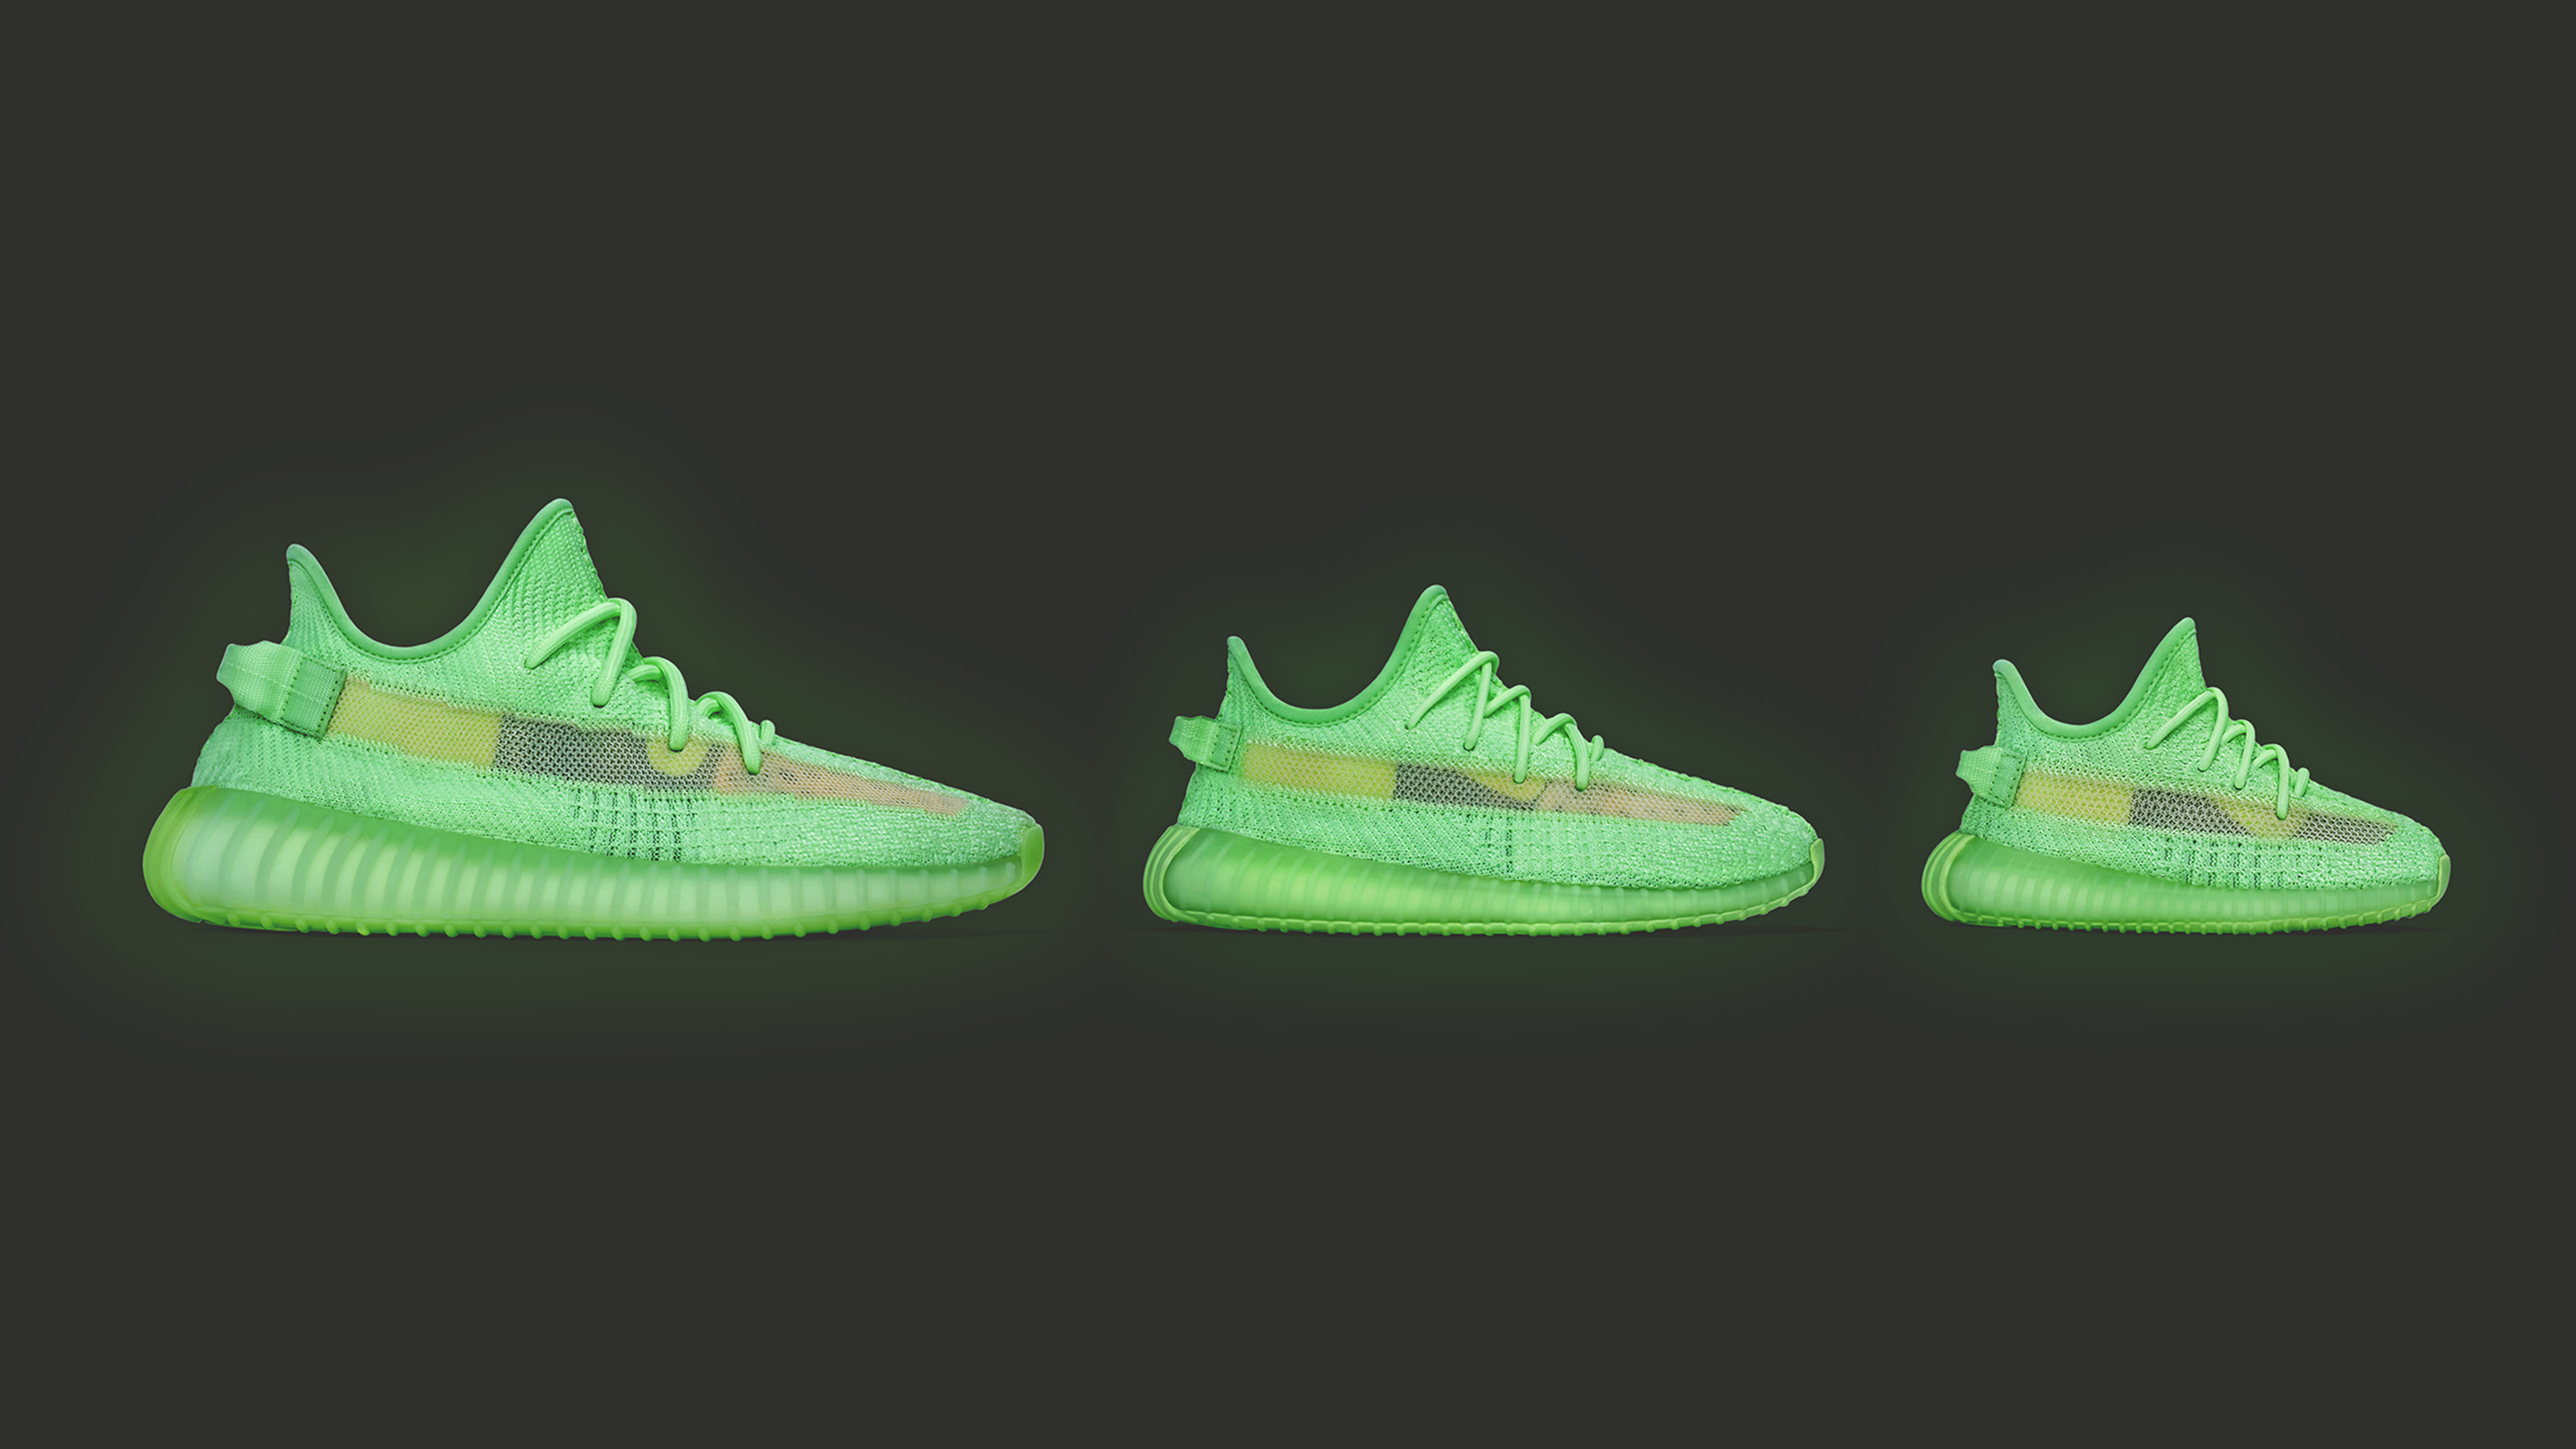 Adidas Yeezy Boost 350 V2 Glow In The Dark Release Date Sole